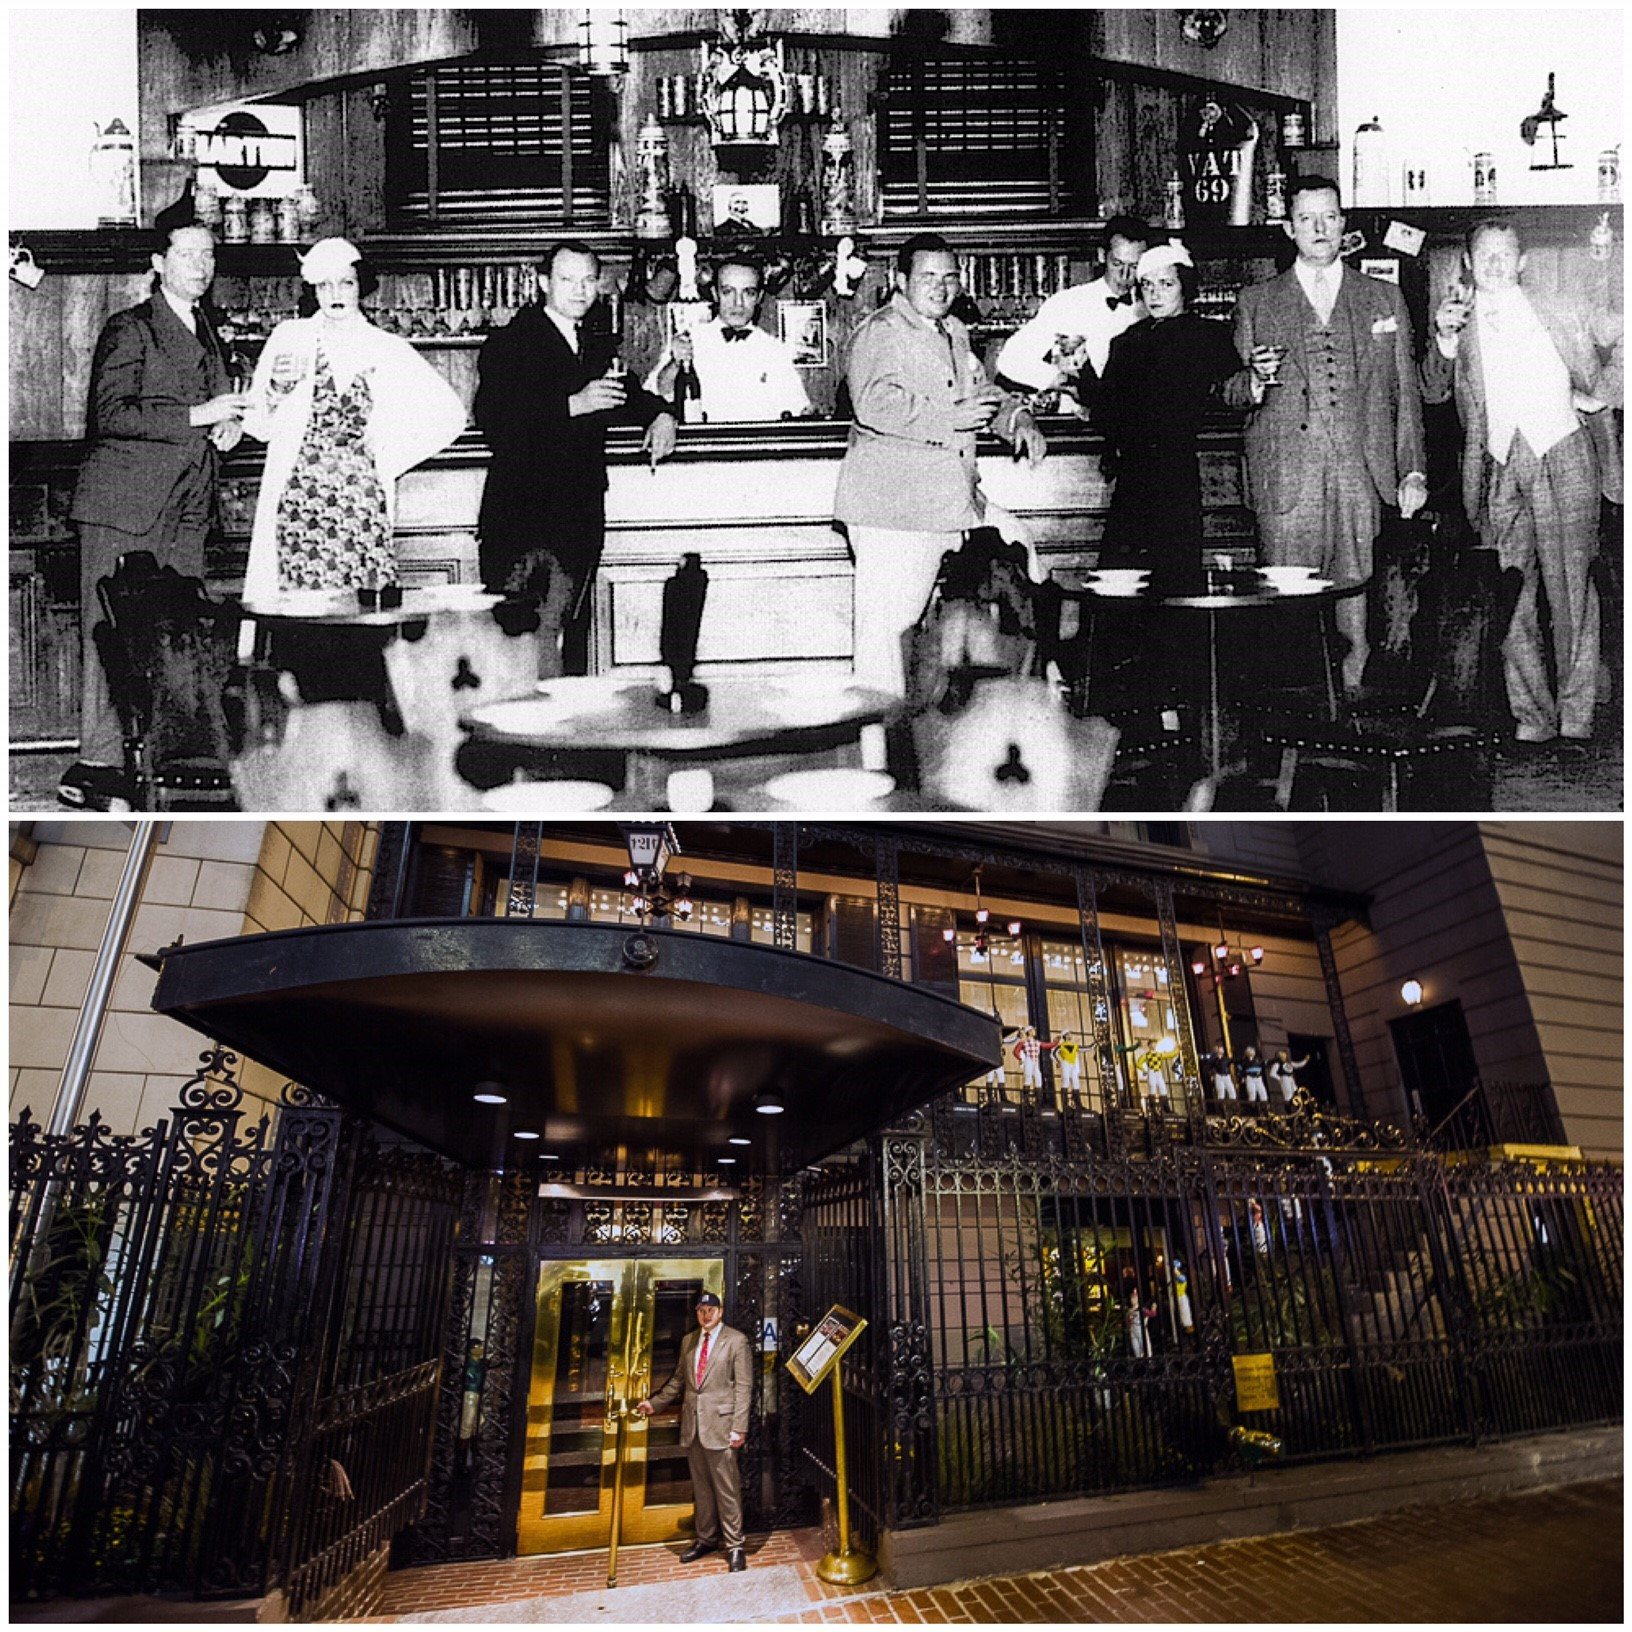 The 21st New York club was a famous Speakeasy serving alcohol during the Prohibition. The first picture shows the club as an illegal bar during the 1920s. The club still exists in its original place in the heart of Manhattan (picture 2) and it's also a high-end restaurant.